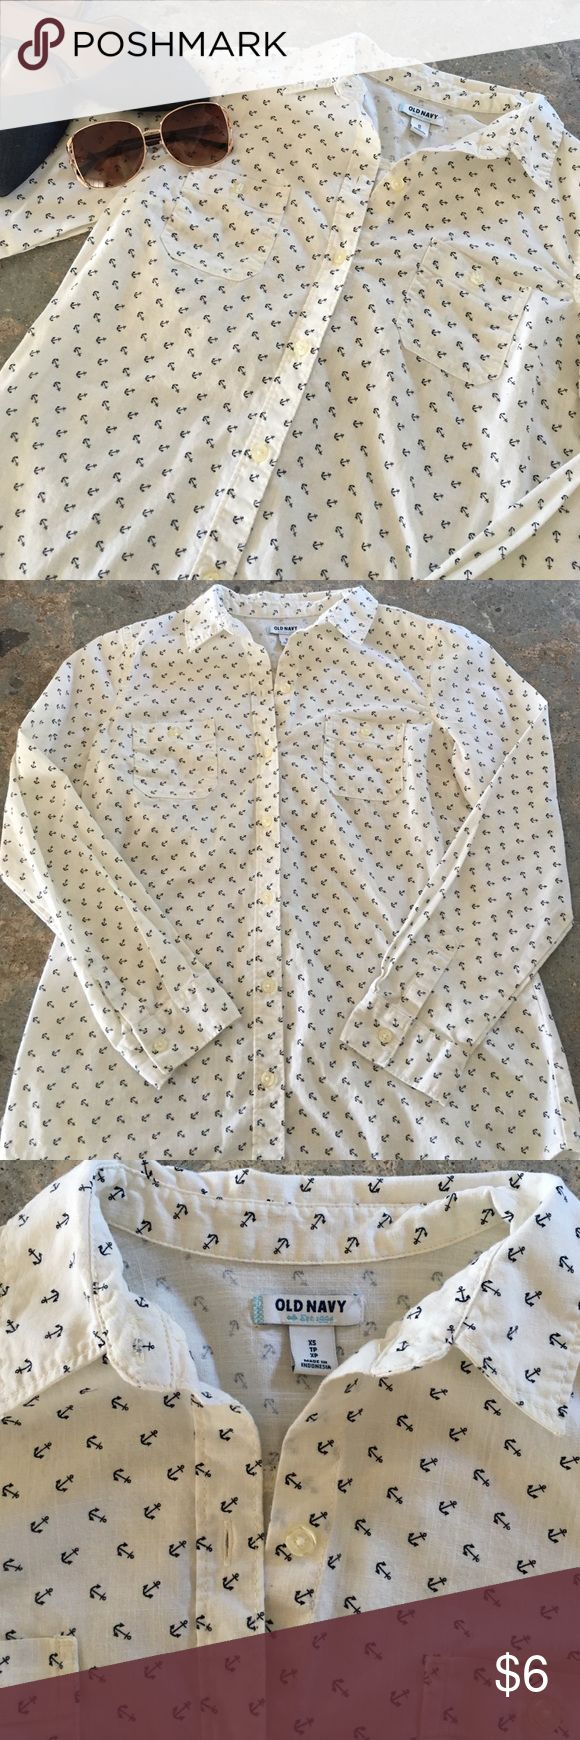 Old navy anchor print long sleeve In good condition! Offwhite color with black anchors throughout! Buttons going all the way down the front with 2 pockets at chest. Fabric is somewhat sheer. Old Navy Tops Button Down Shirts